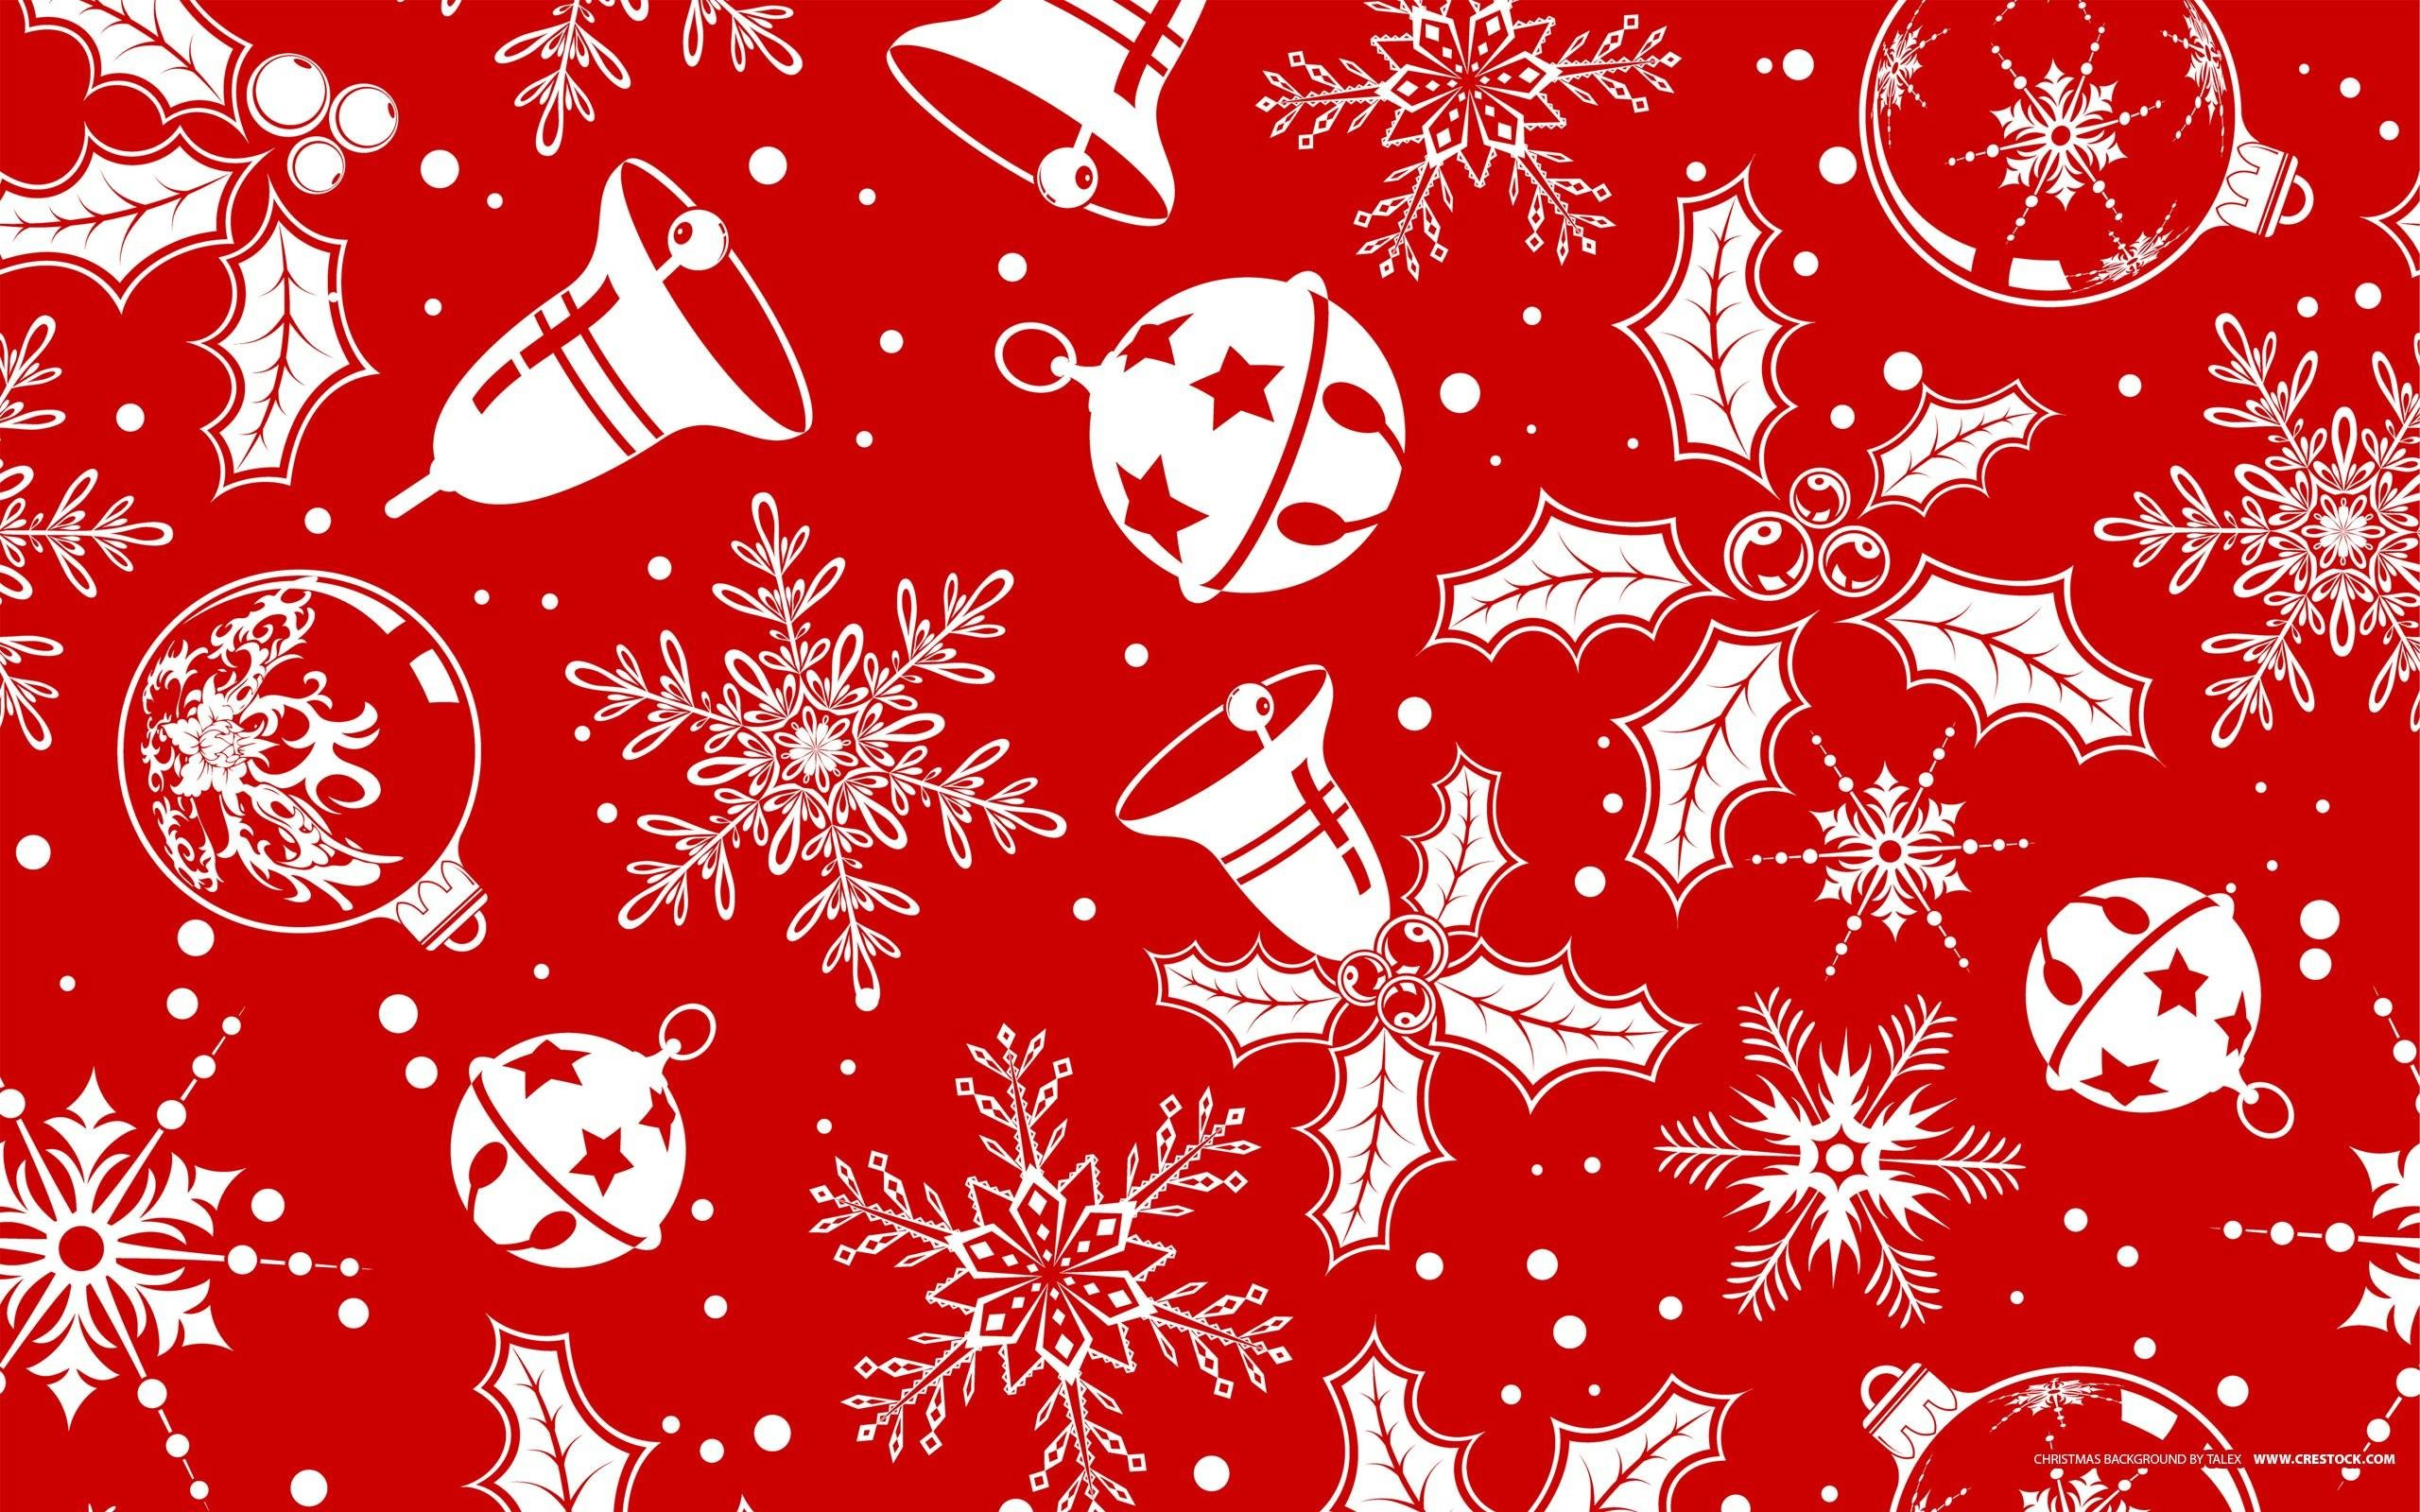 2560x1600 Free Christmas Wallpaper Backgrounds - Wallpaper Cave